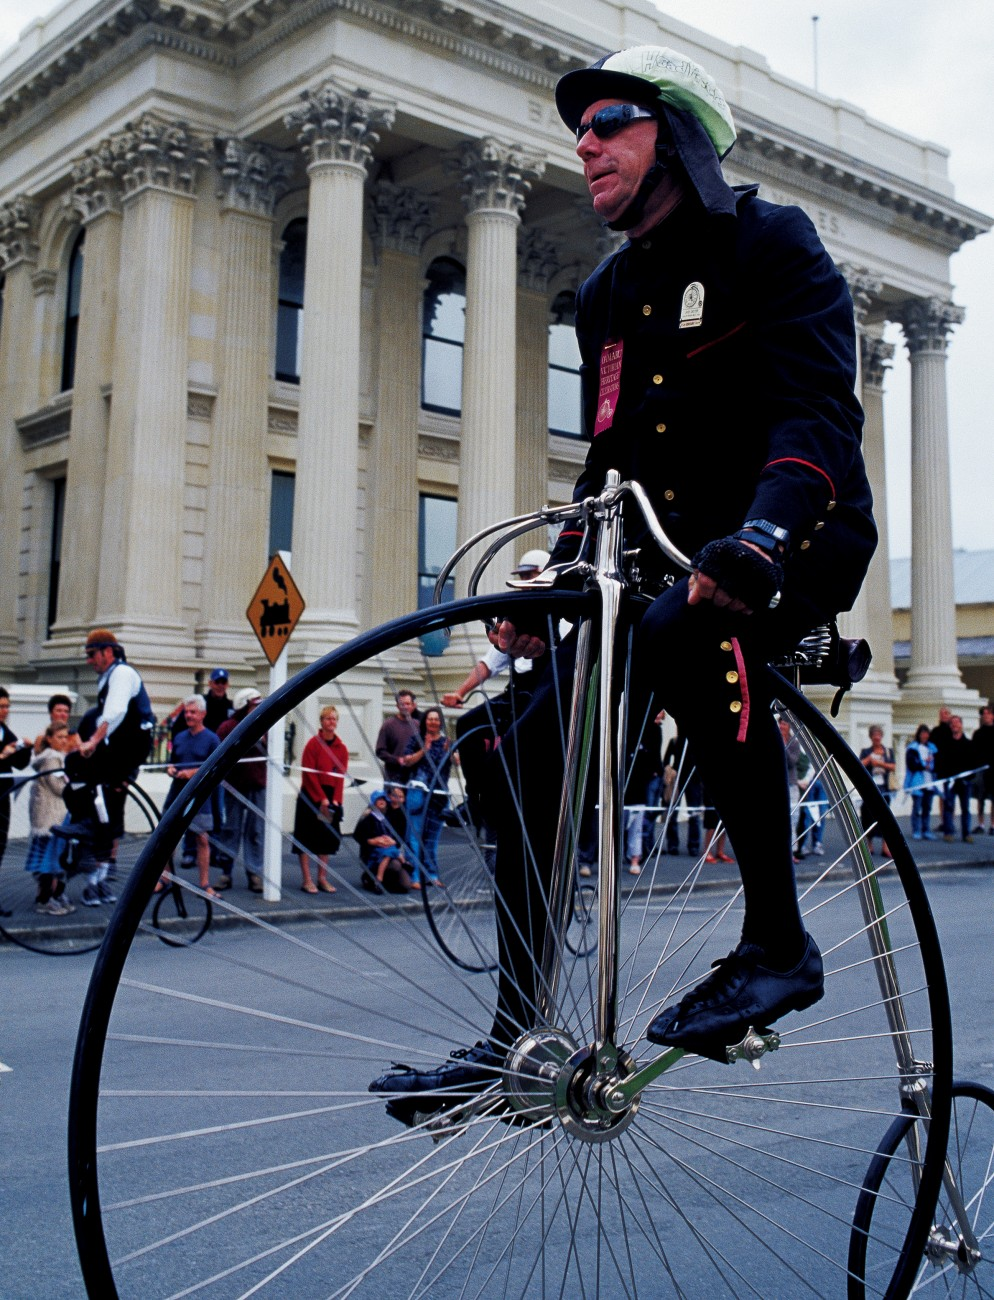 American Jack Castor takes on locals in a highlight of Oamaru's Victorian heritage celebrations—the national penny farthing championships. Castor cut his cycling teeth riding an 'Ordinary' from San Francisco to Boston in just 44 days. Here he takes rather less time outside the historic Bank of New South Wales (resplendent in its classical dress on previous pages).